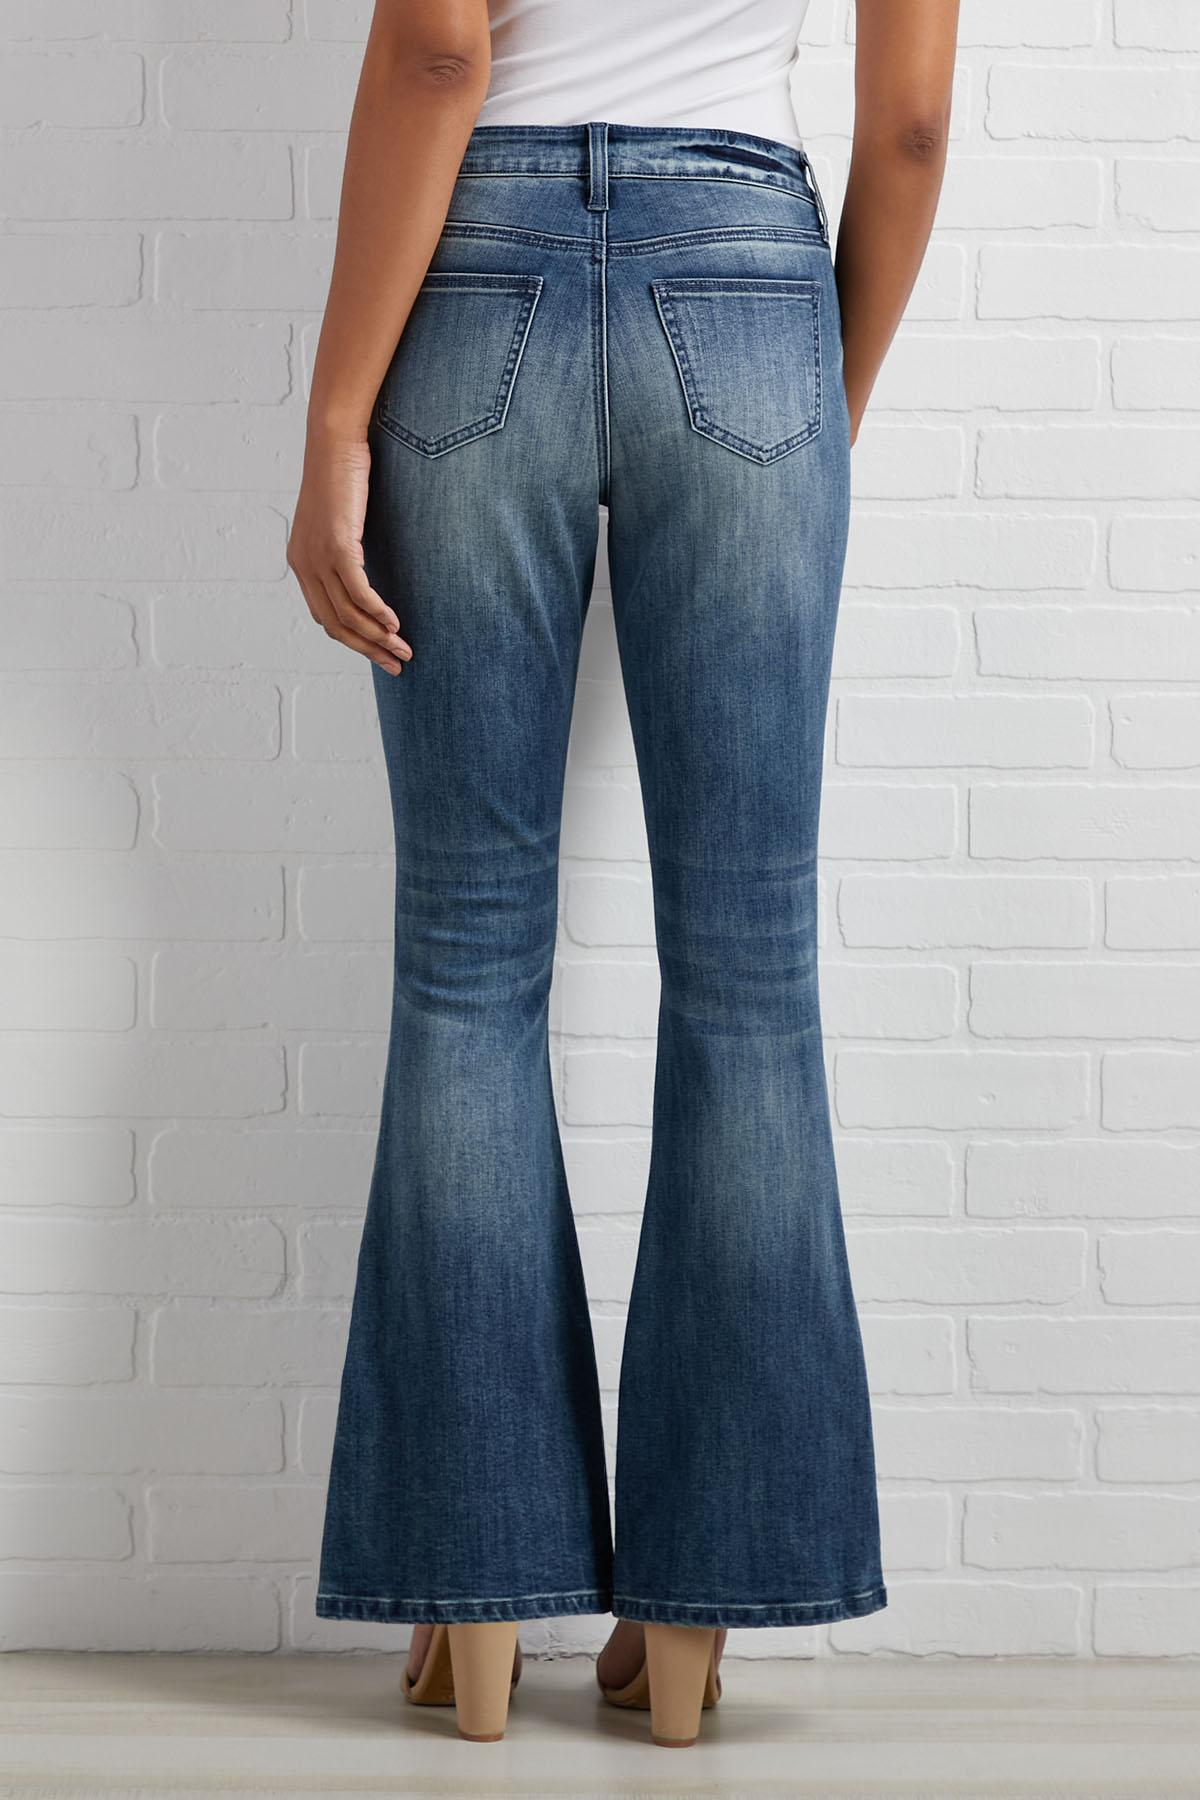 Split The Check Jeans